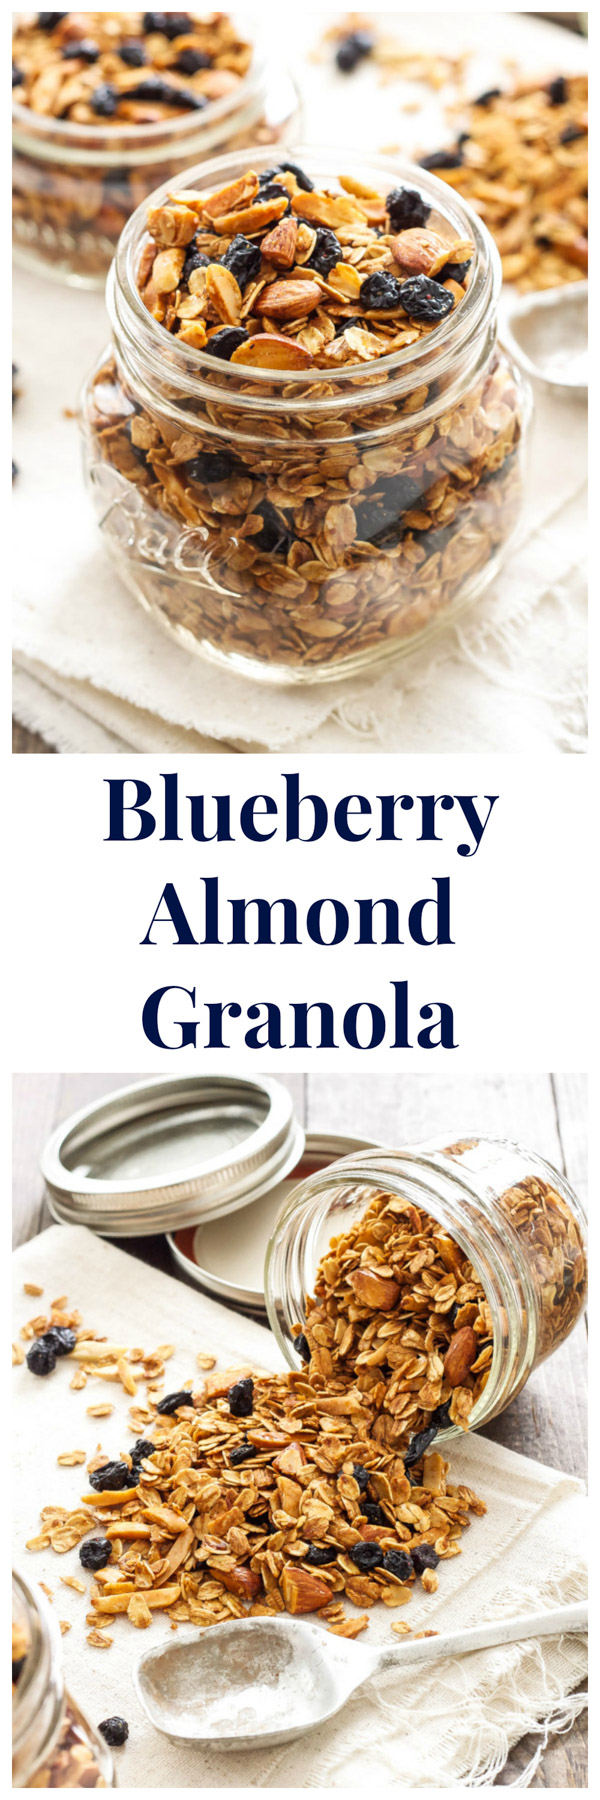 Blueberry Almond Granola | Crunchy, sweet, granola bursting with dried blueberries and almonds! | @reciperunner